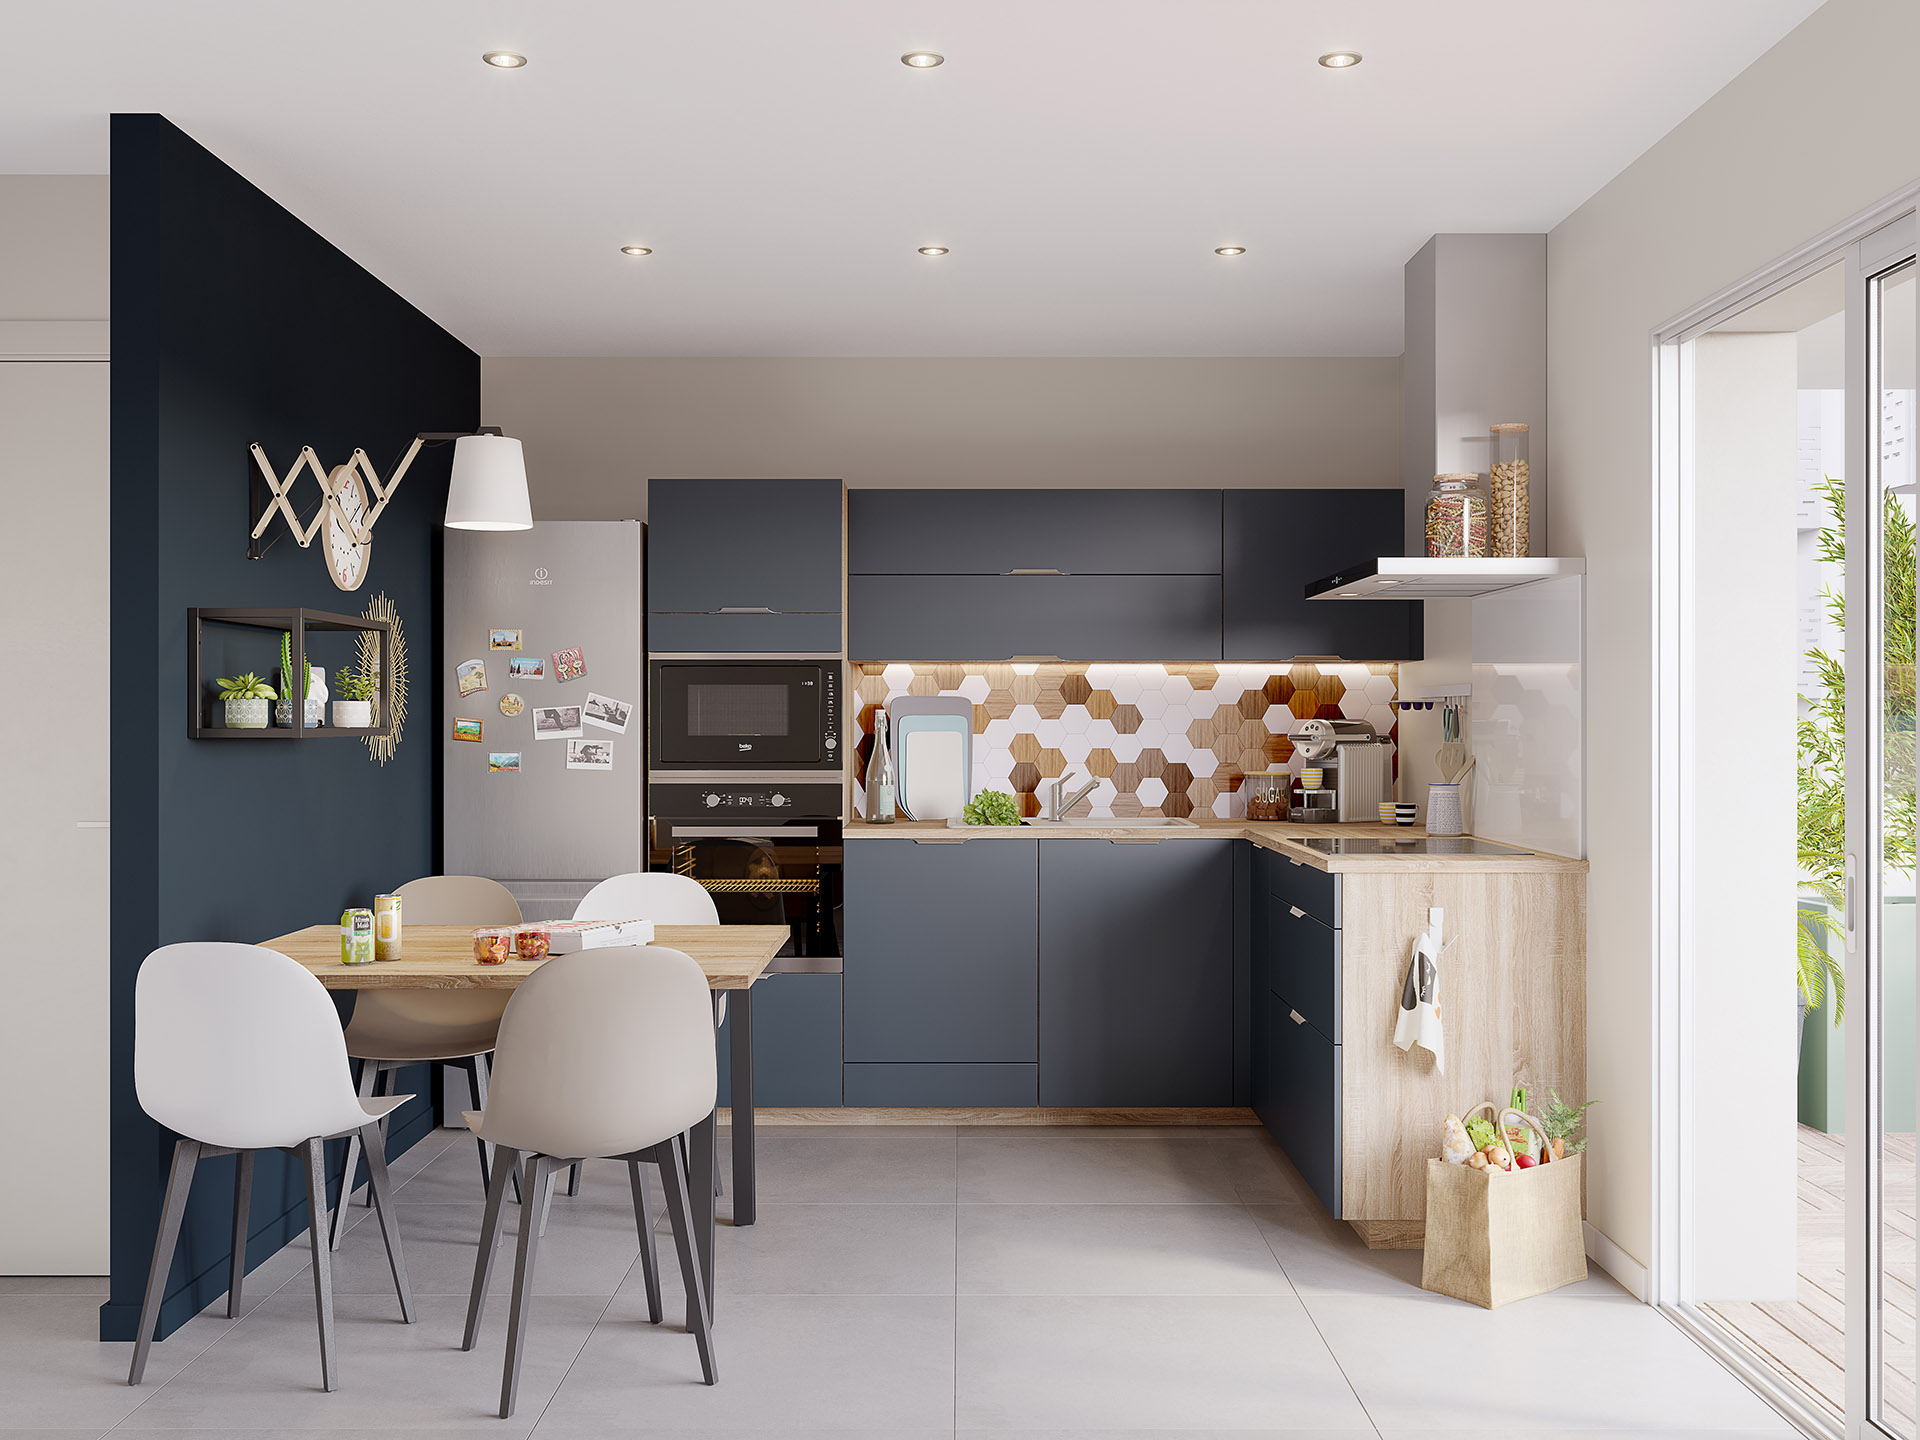 3D image of a modern open kitchen in black and wood